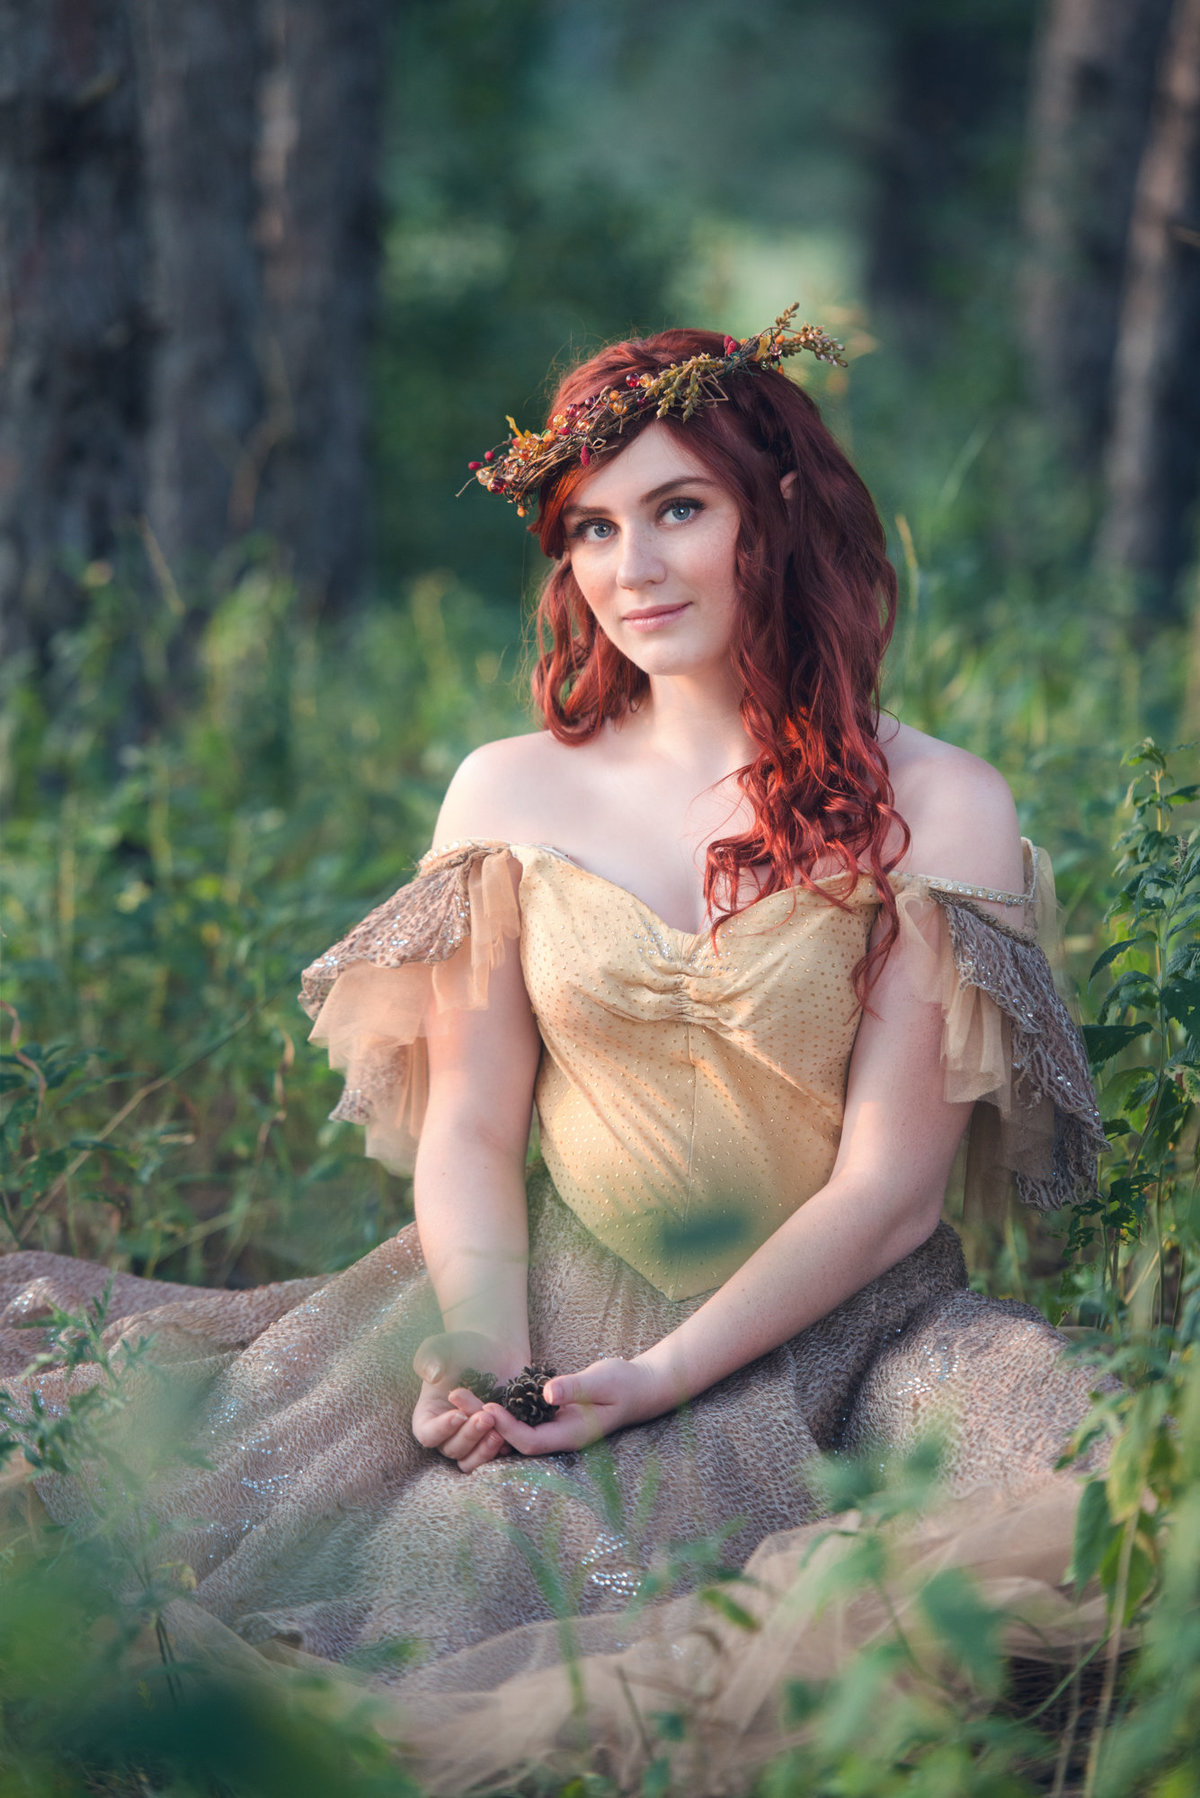 Fantasy whimsical senior portrait photographer-6